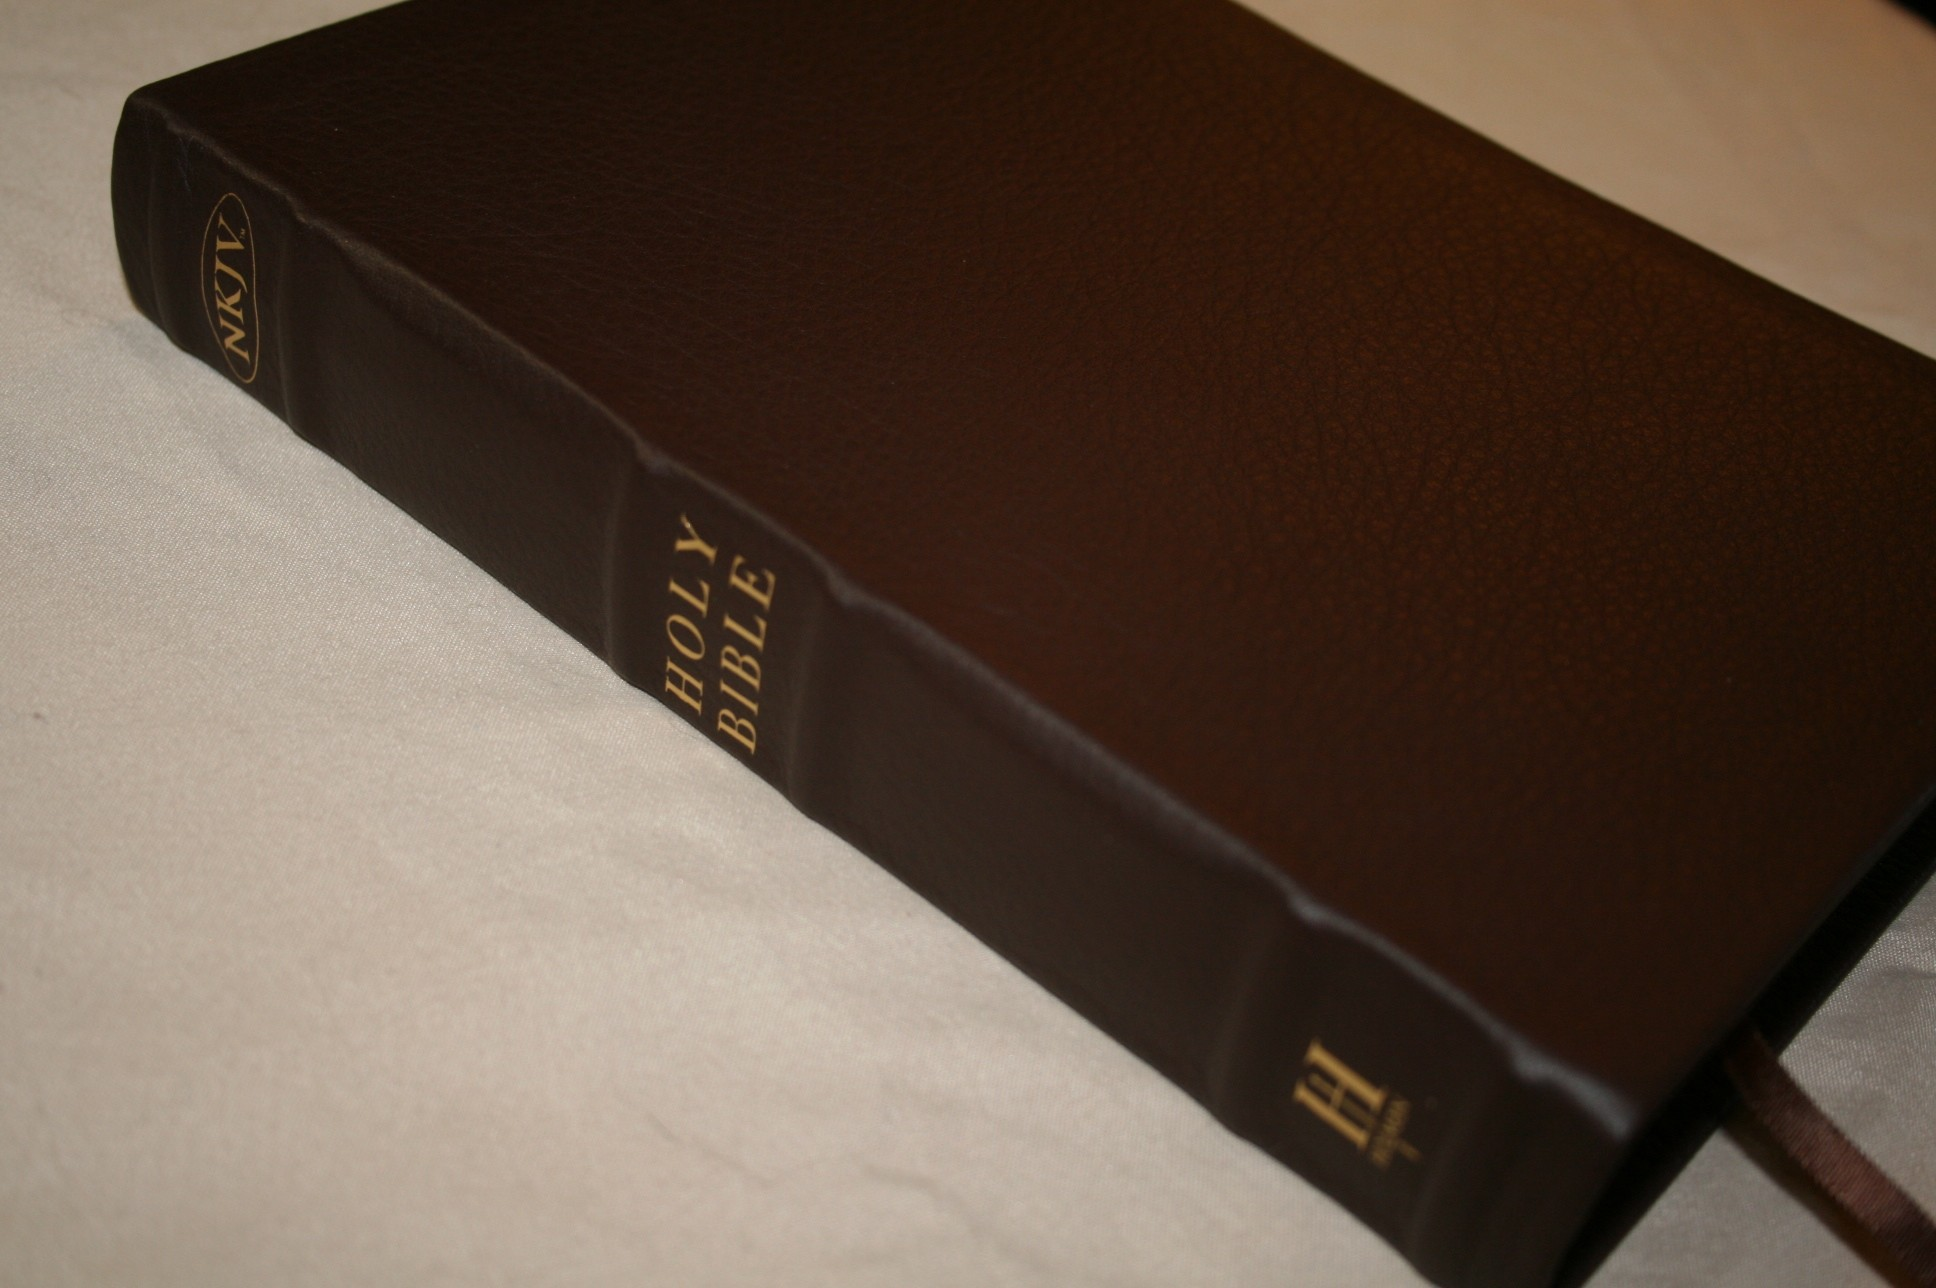 Holman Nkjv Large Print Personal Size Reference Bible Review